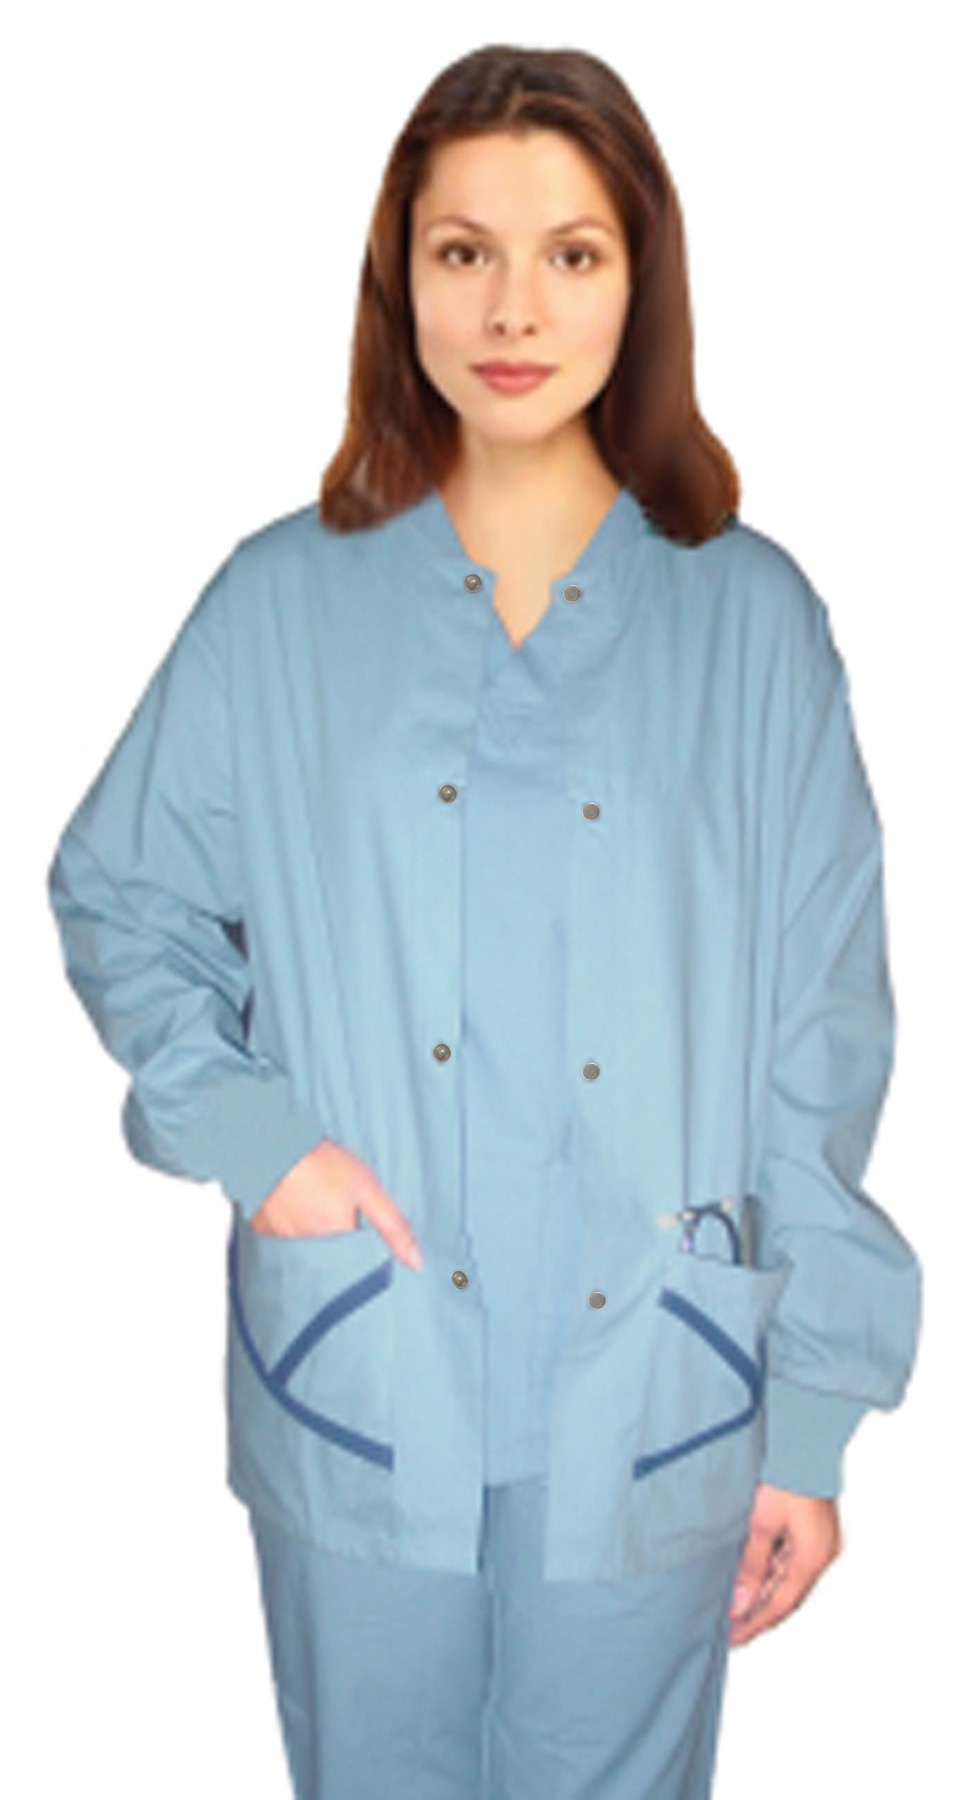 Jacket 2 pocket y neck contrast piping solid unisex full sleeve with rib